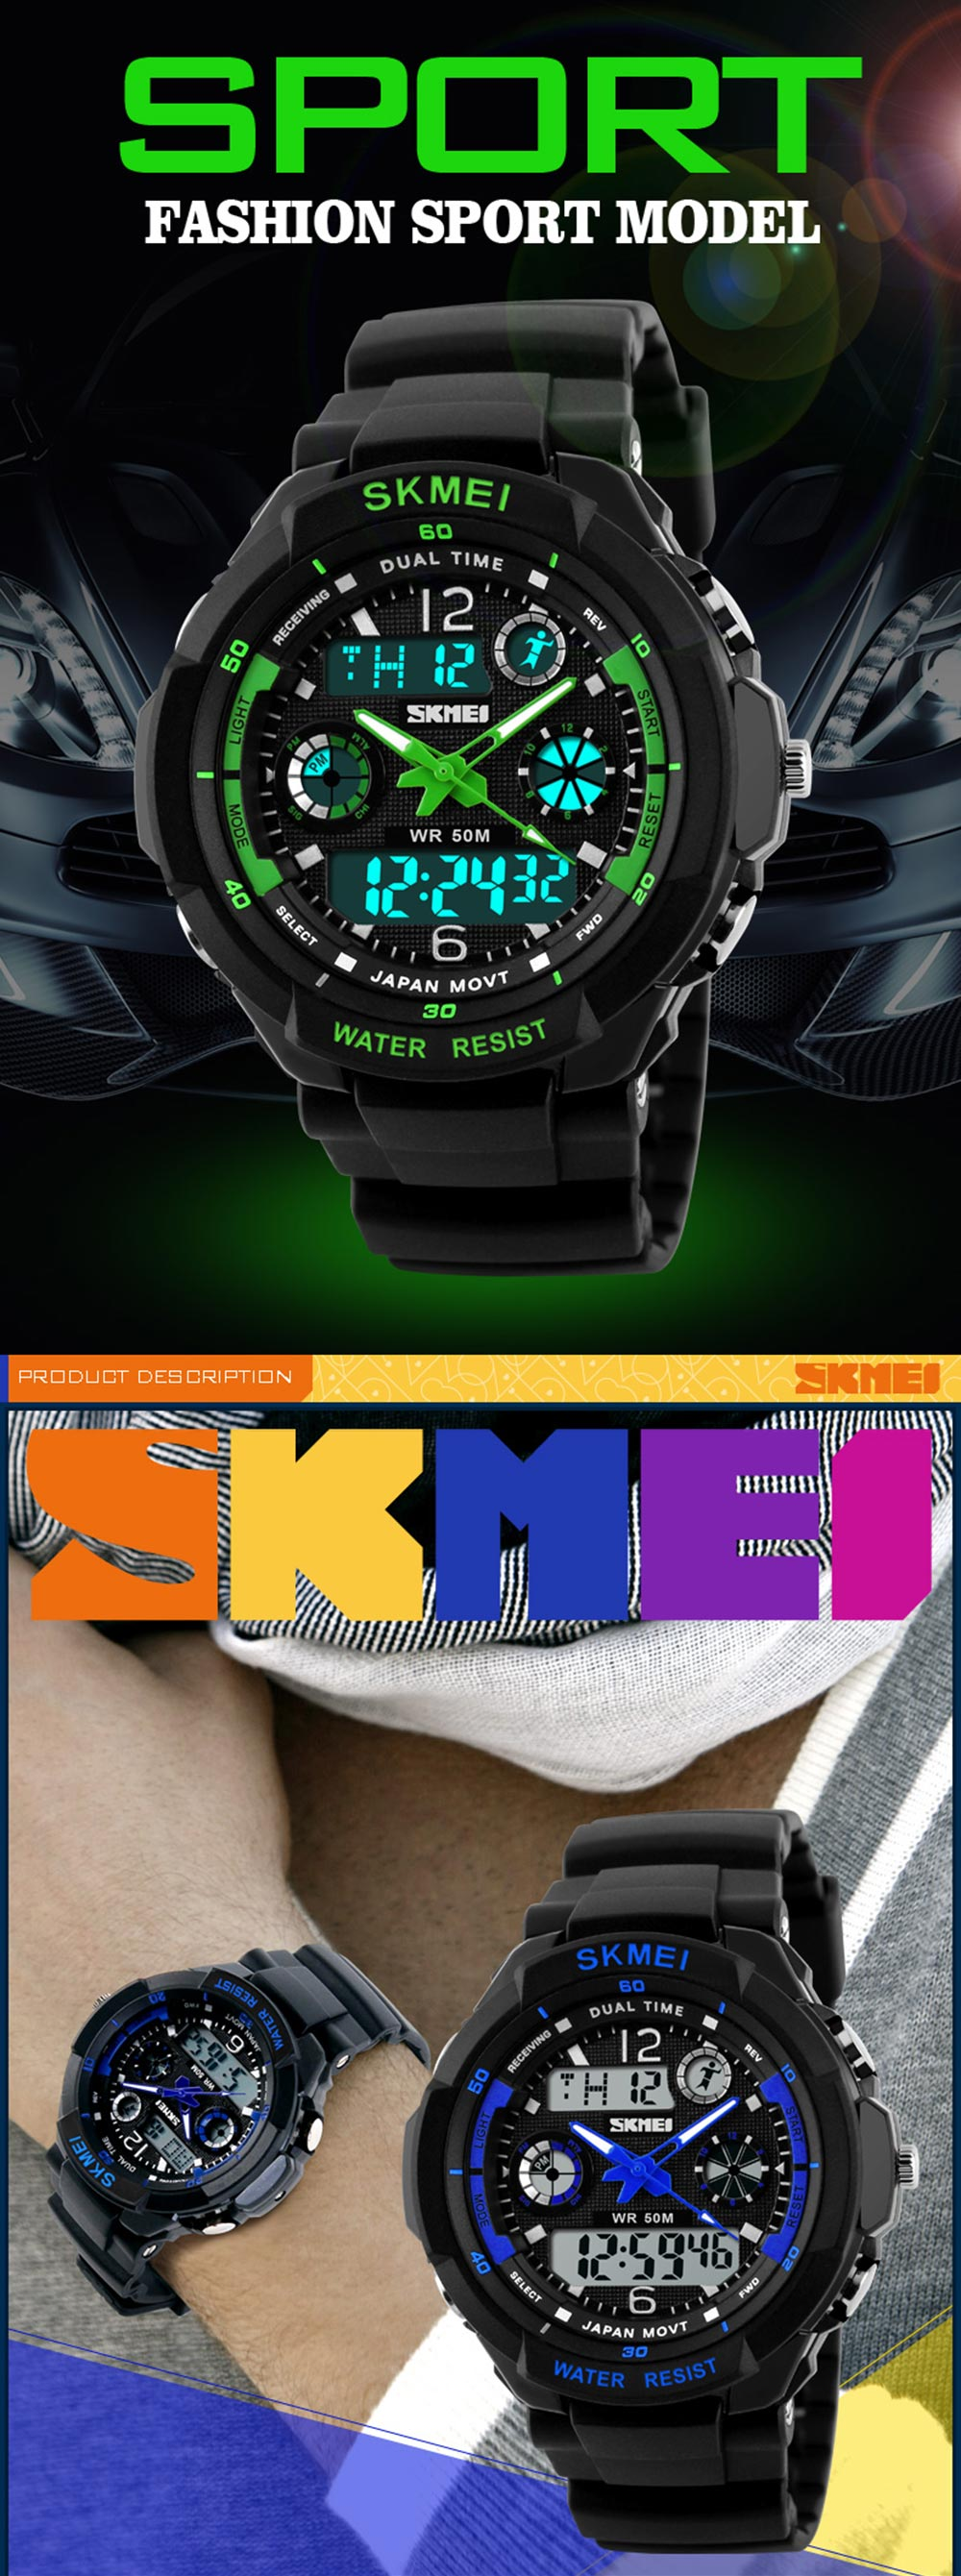 Skmei 0931 Green LED Military Watch with 2 Time Zone Chronograph Double Movts and Round Dial